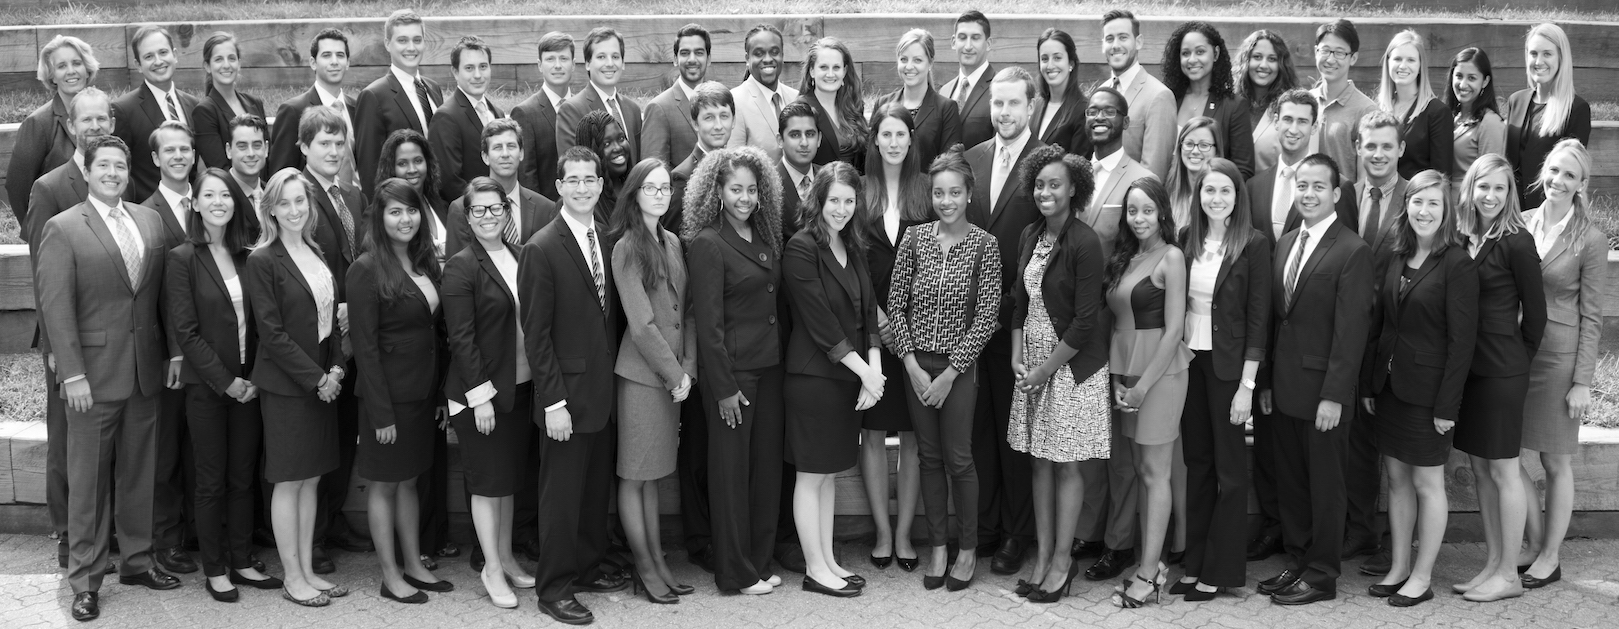 Photo courtesy of DC Law Students in Court